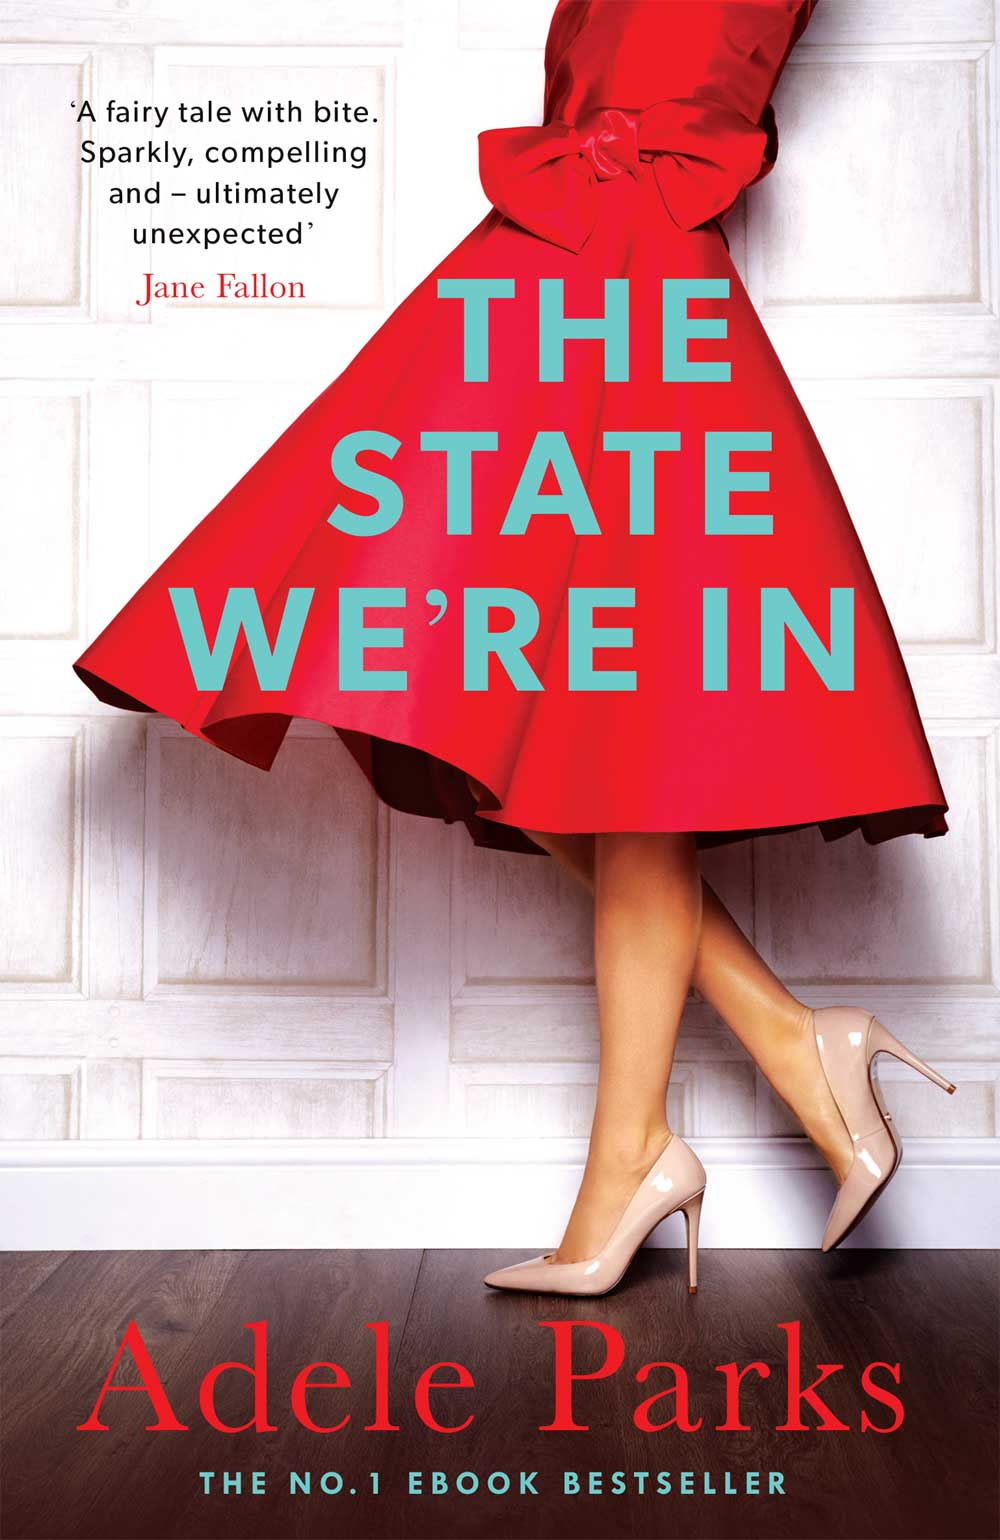 The_State_Were_In